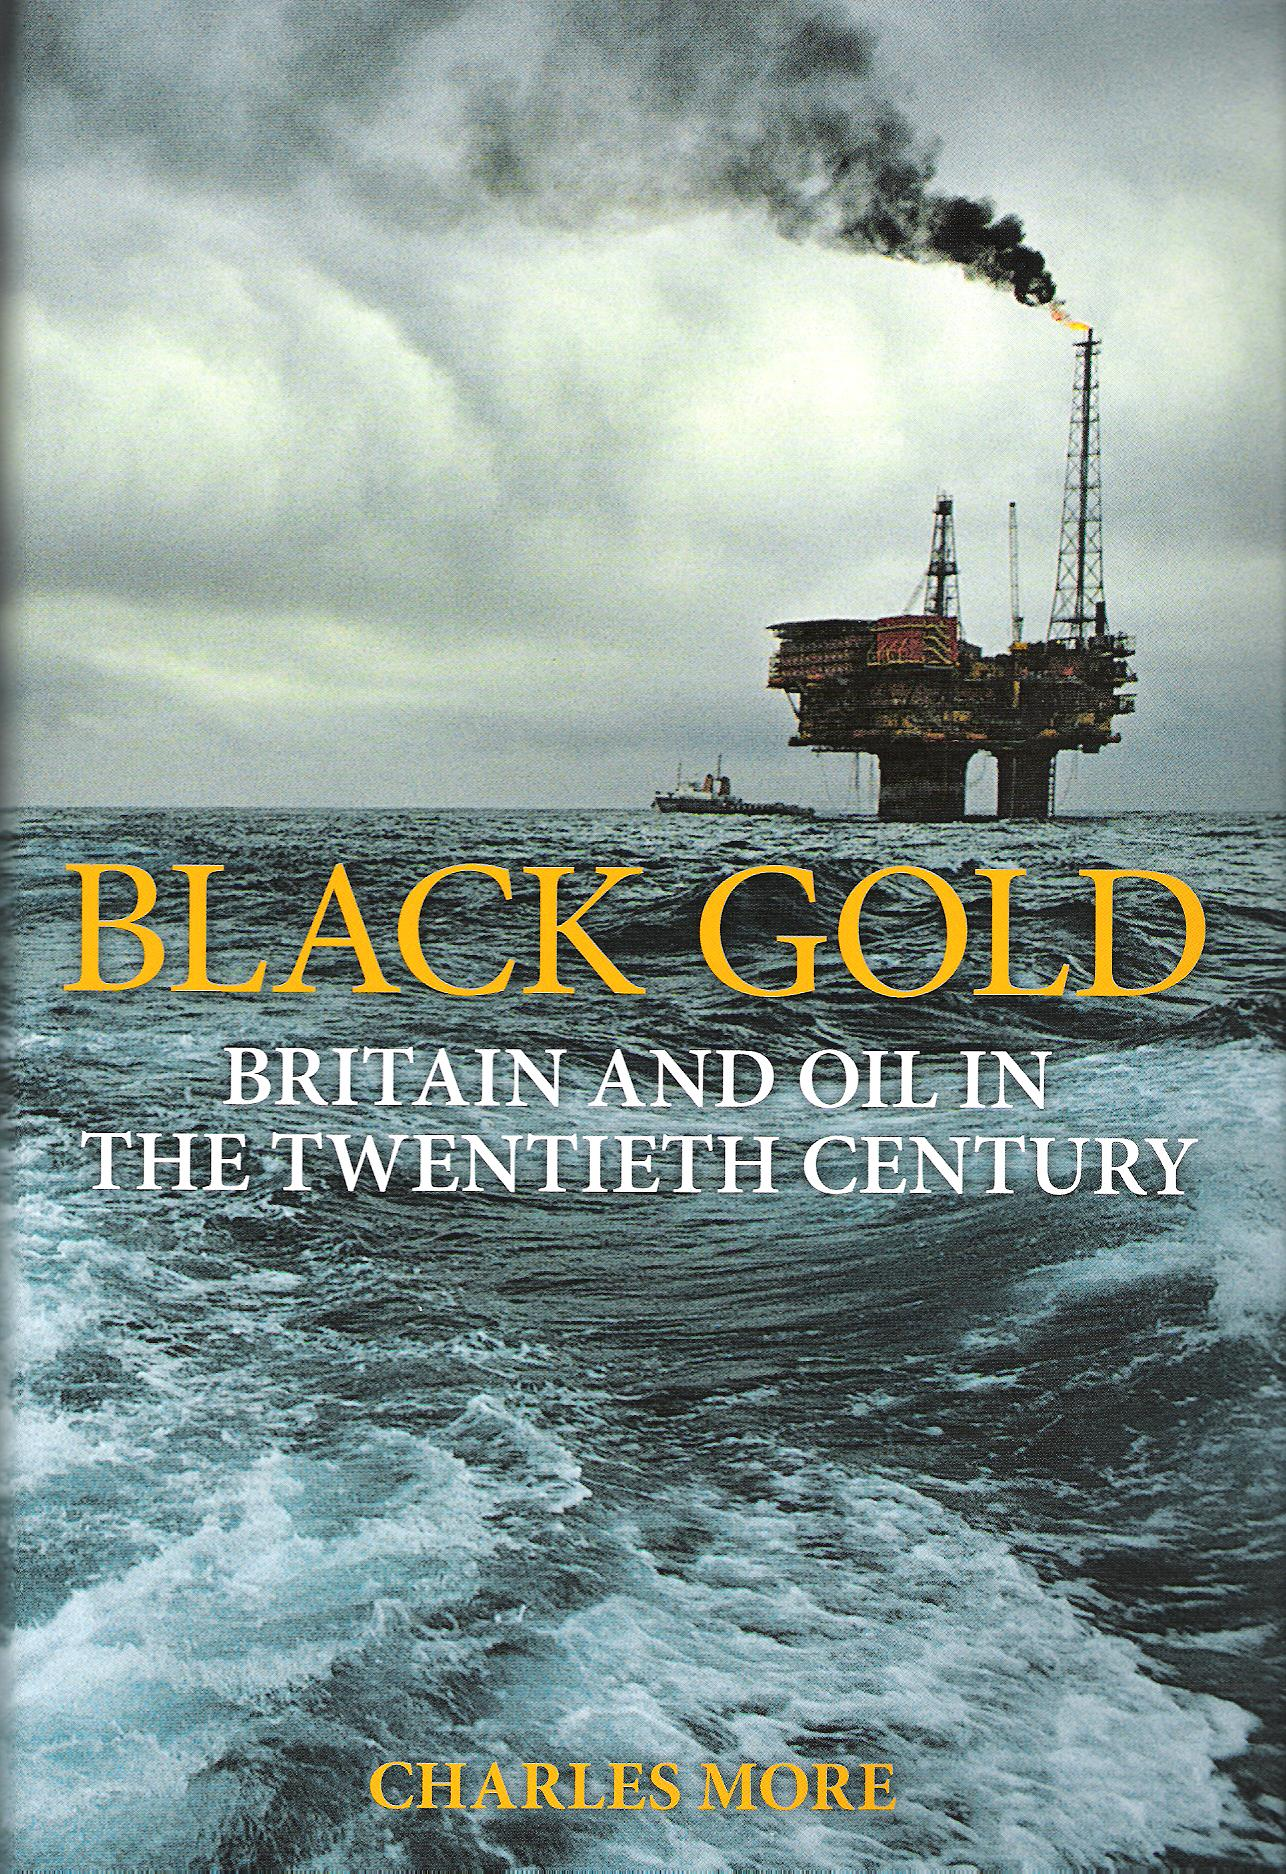 Image for Black Gold: Britain and Oil in the Twentieth Century.